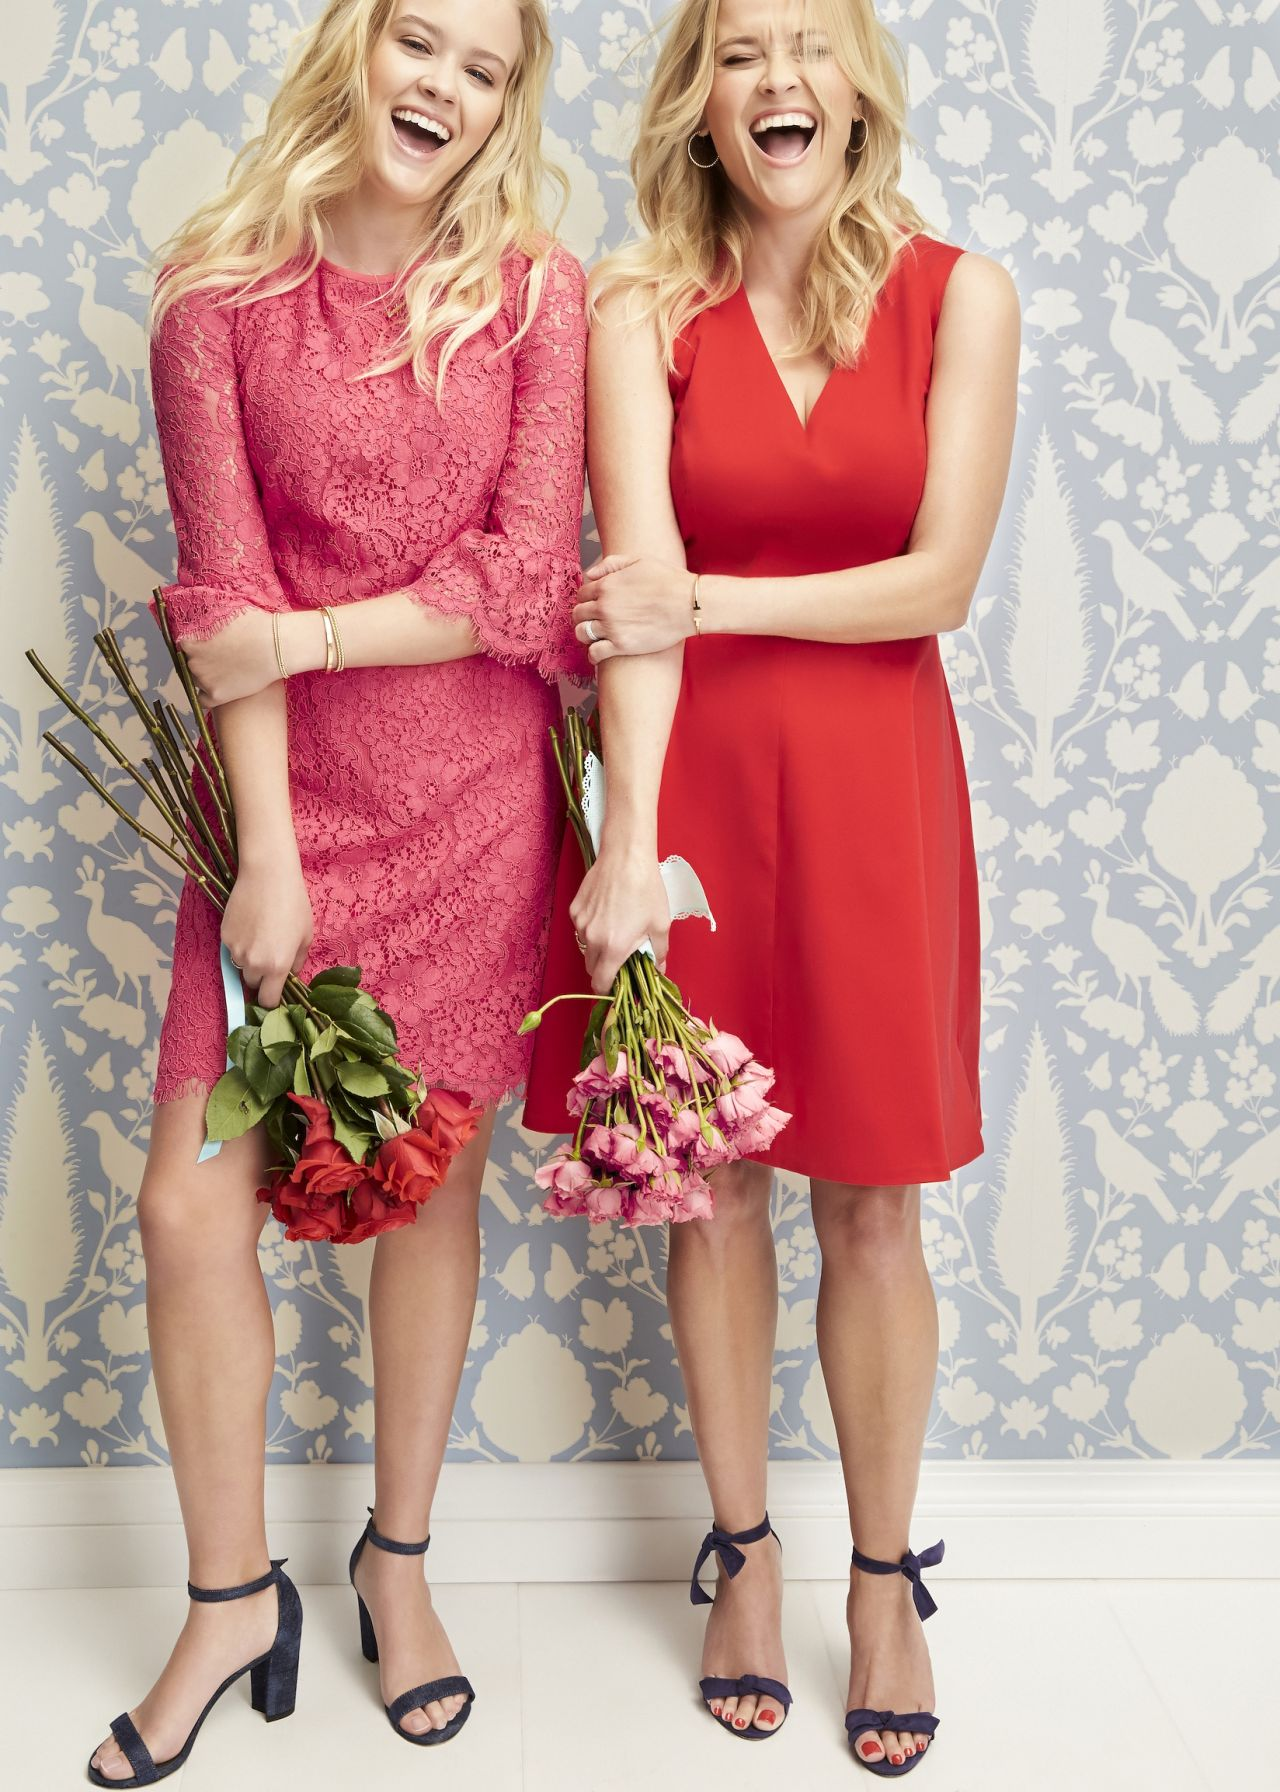 http://celebmafia.com/wp-content/uploads/2018/02/reese-witherspoon-and-ava-phillippe-valentine-s-day-campaign-02-01-2018-1.jpg